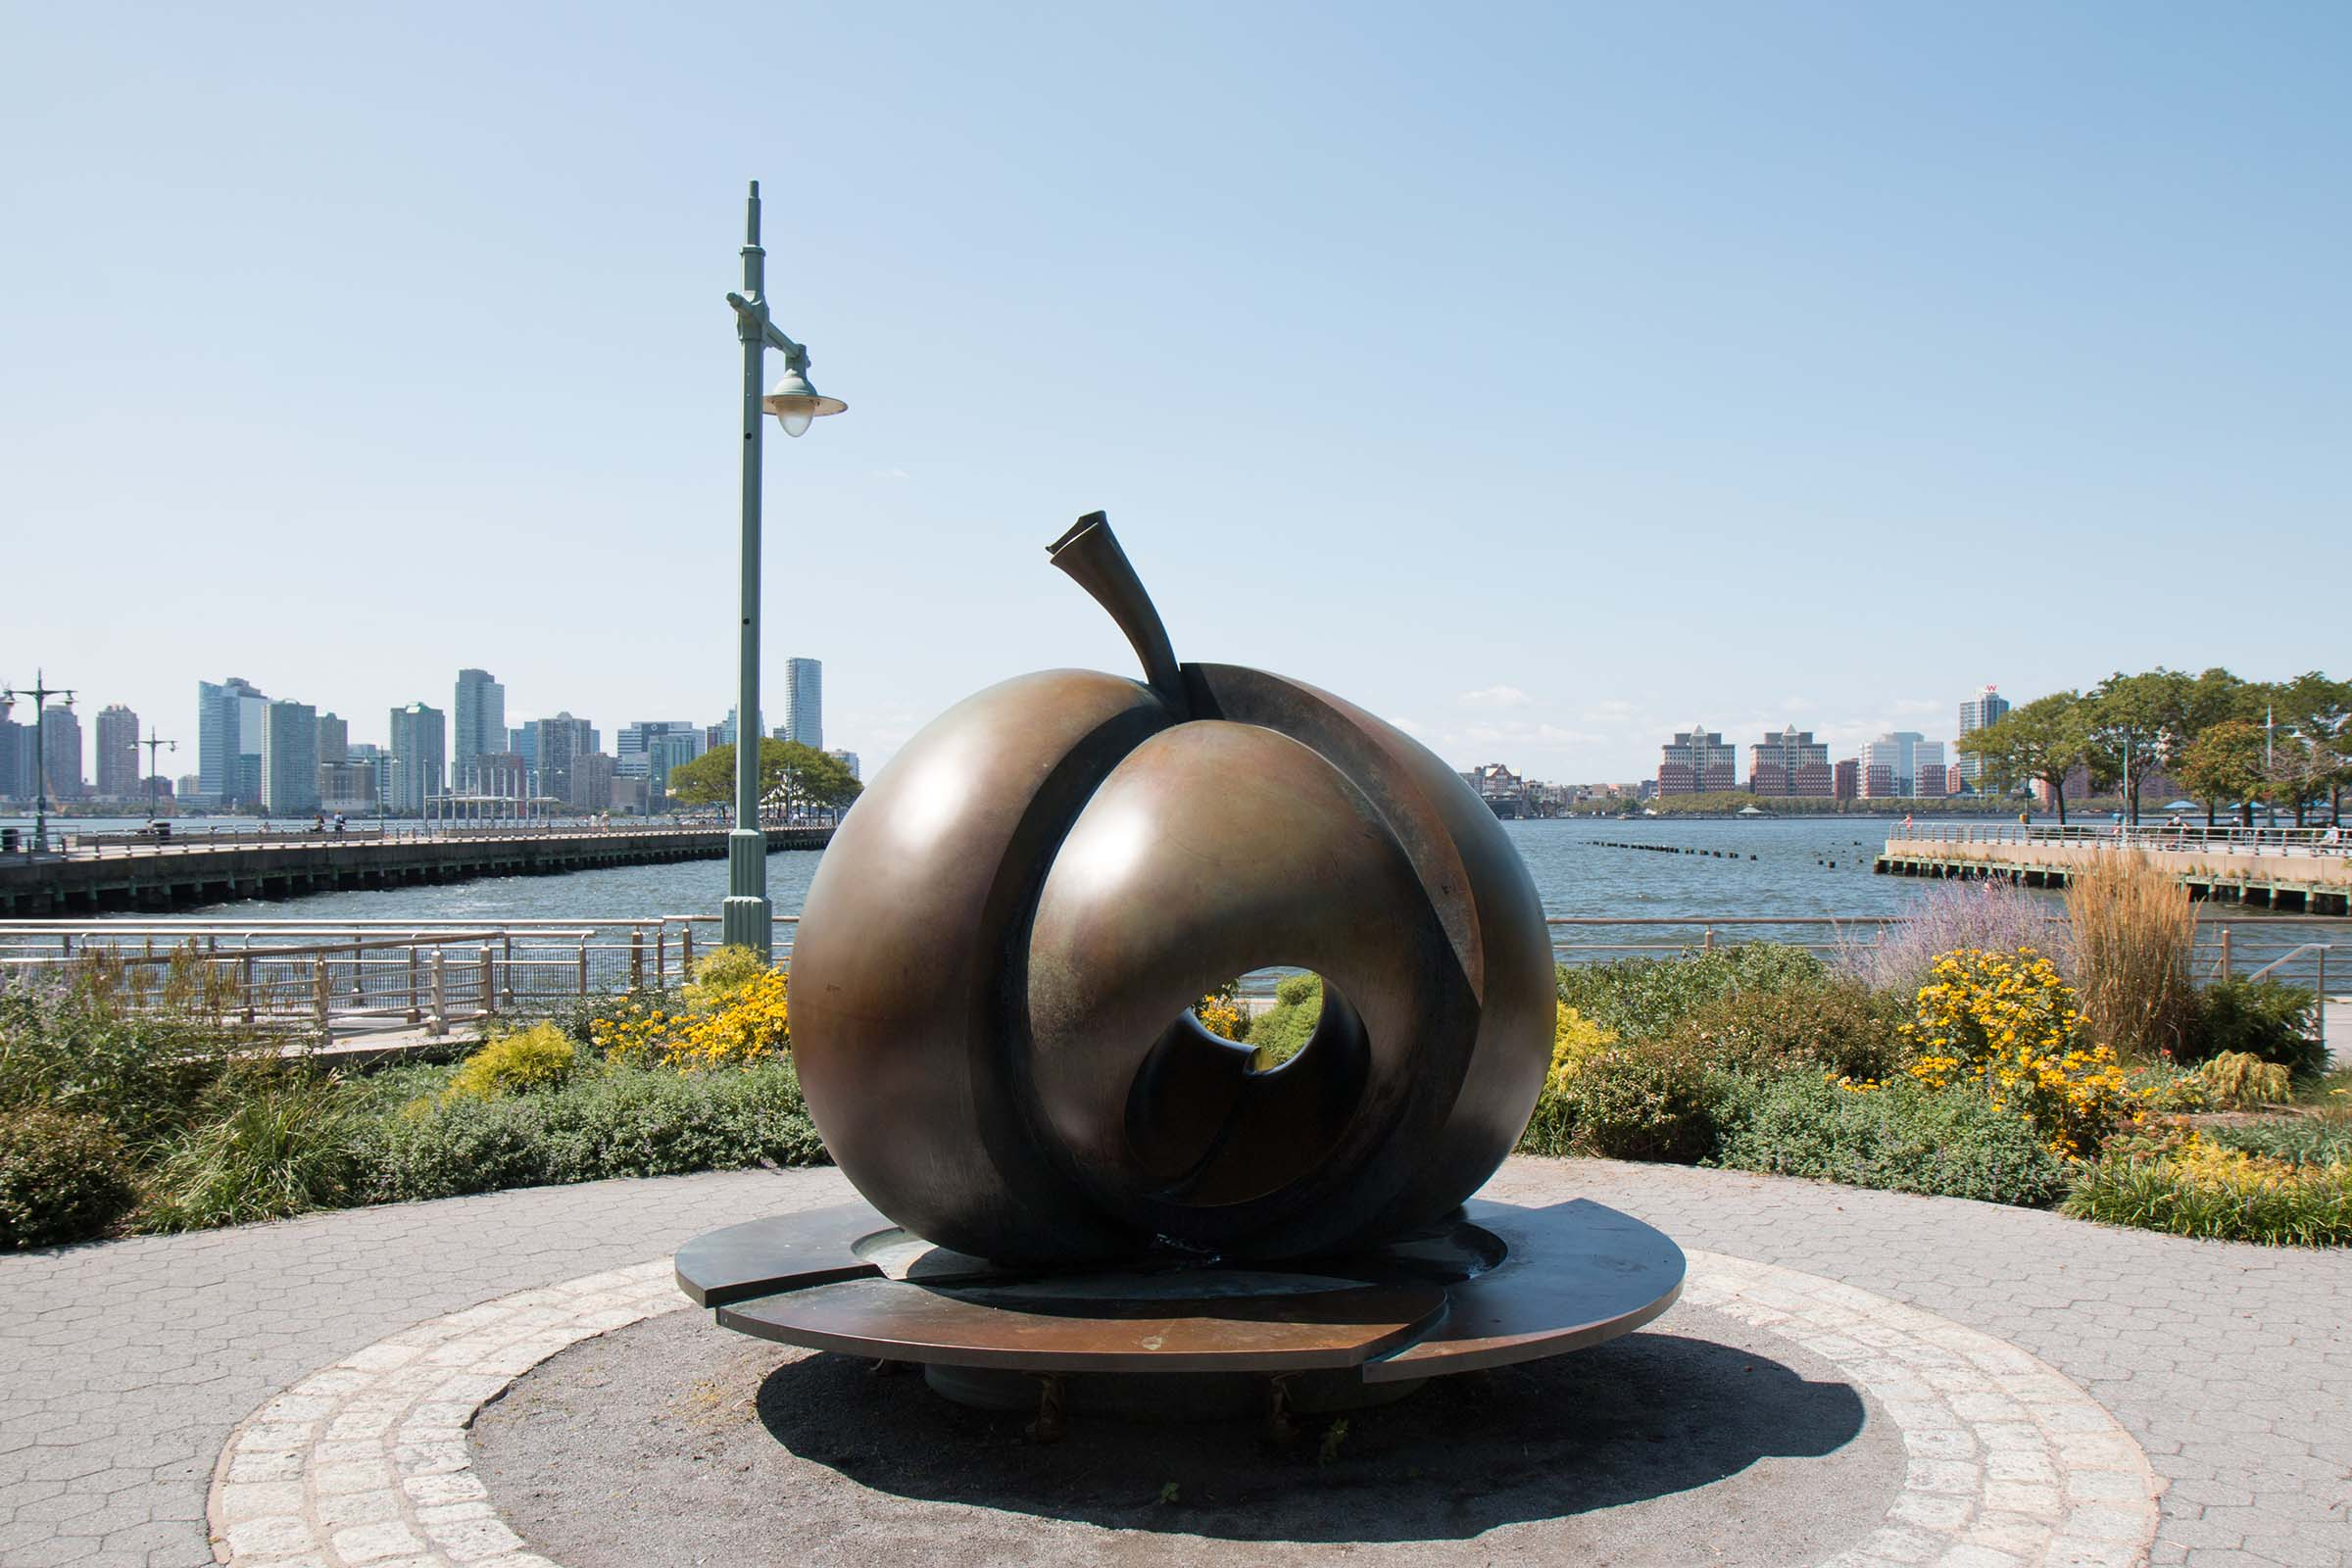 The bronze statue of an Apple sits in the center of the Apple Garden